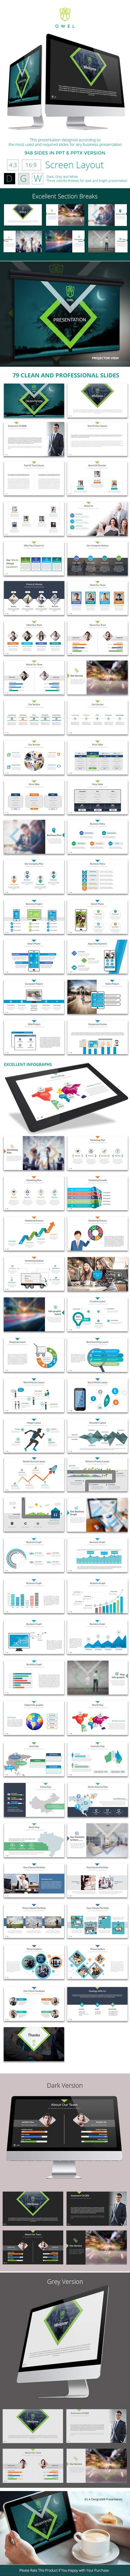 GraphicRiver Owel PowerPoint 11646112